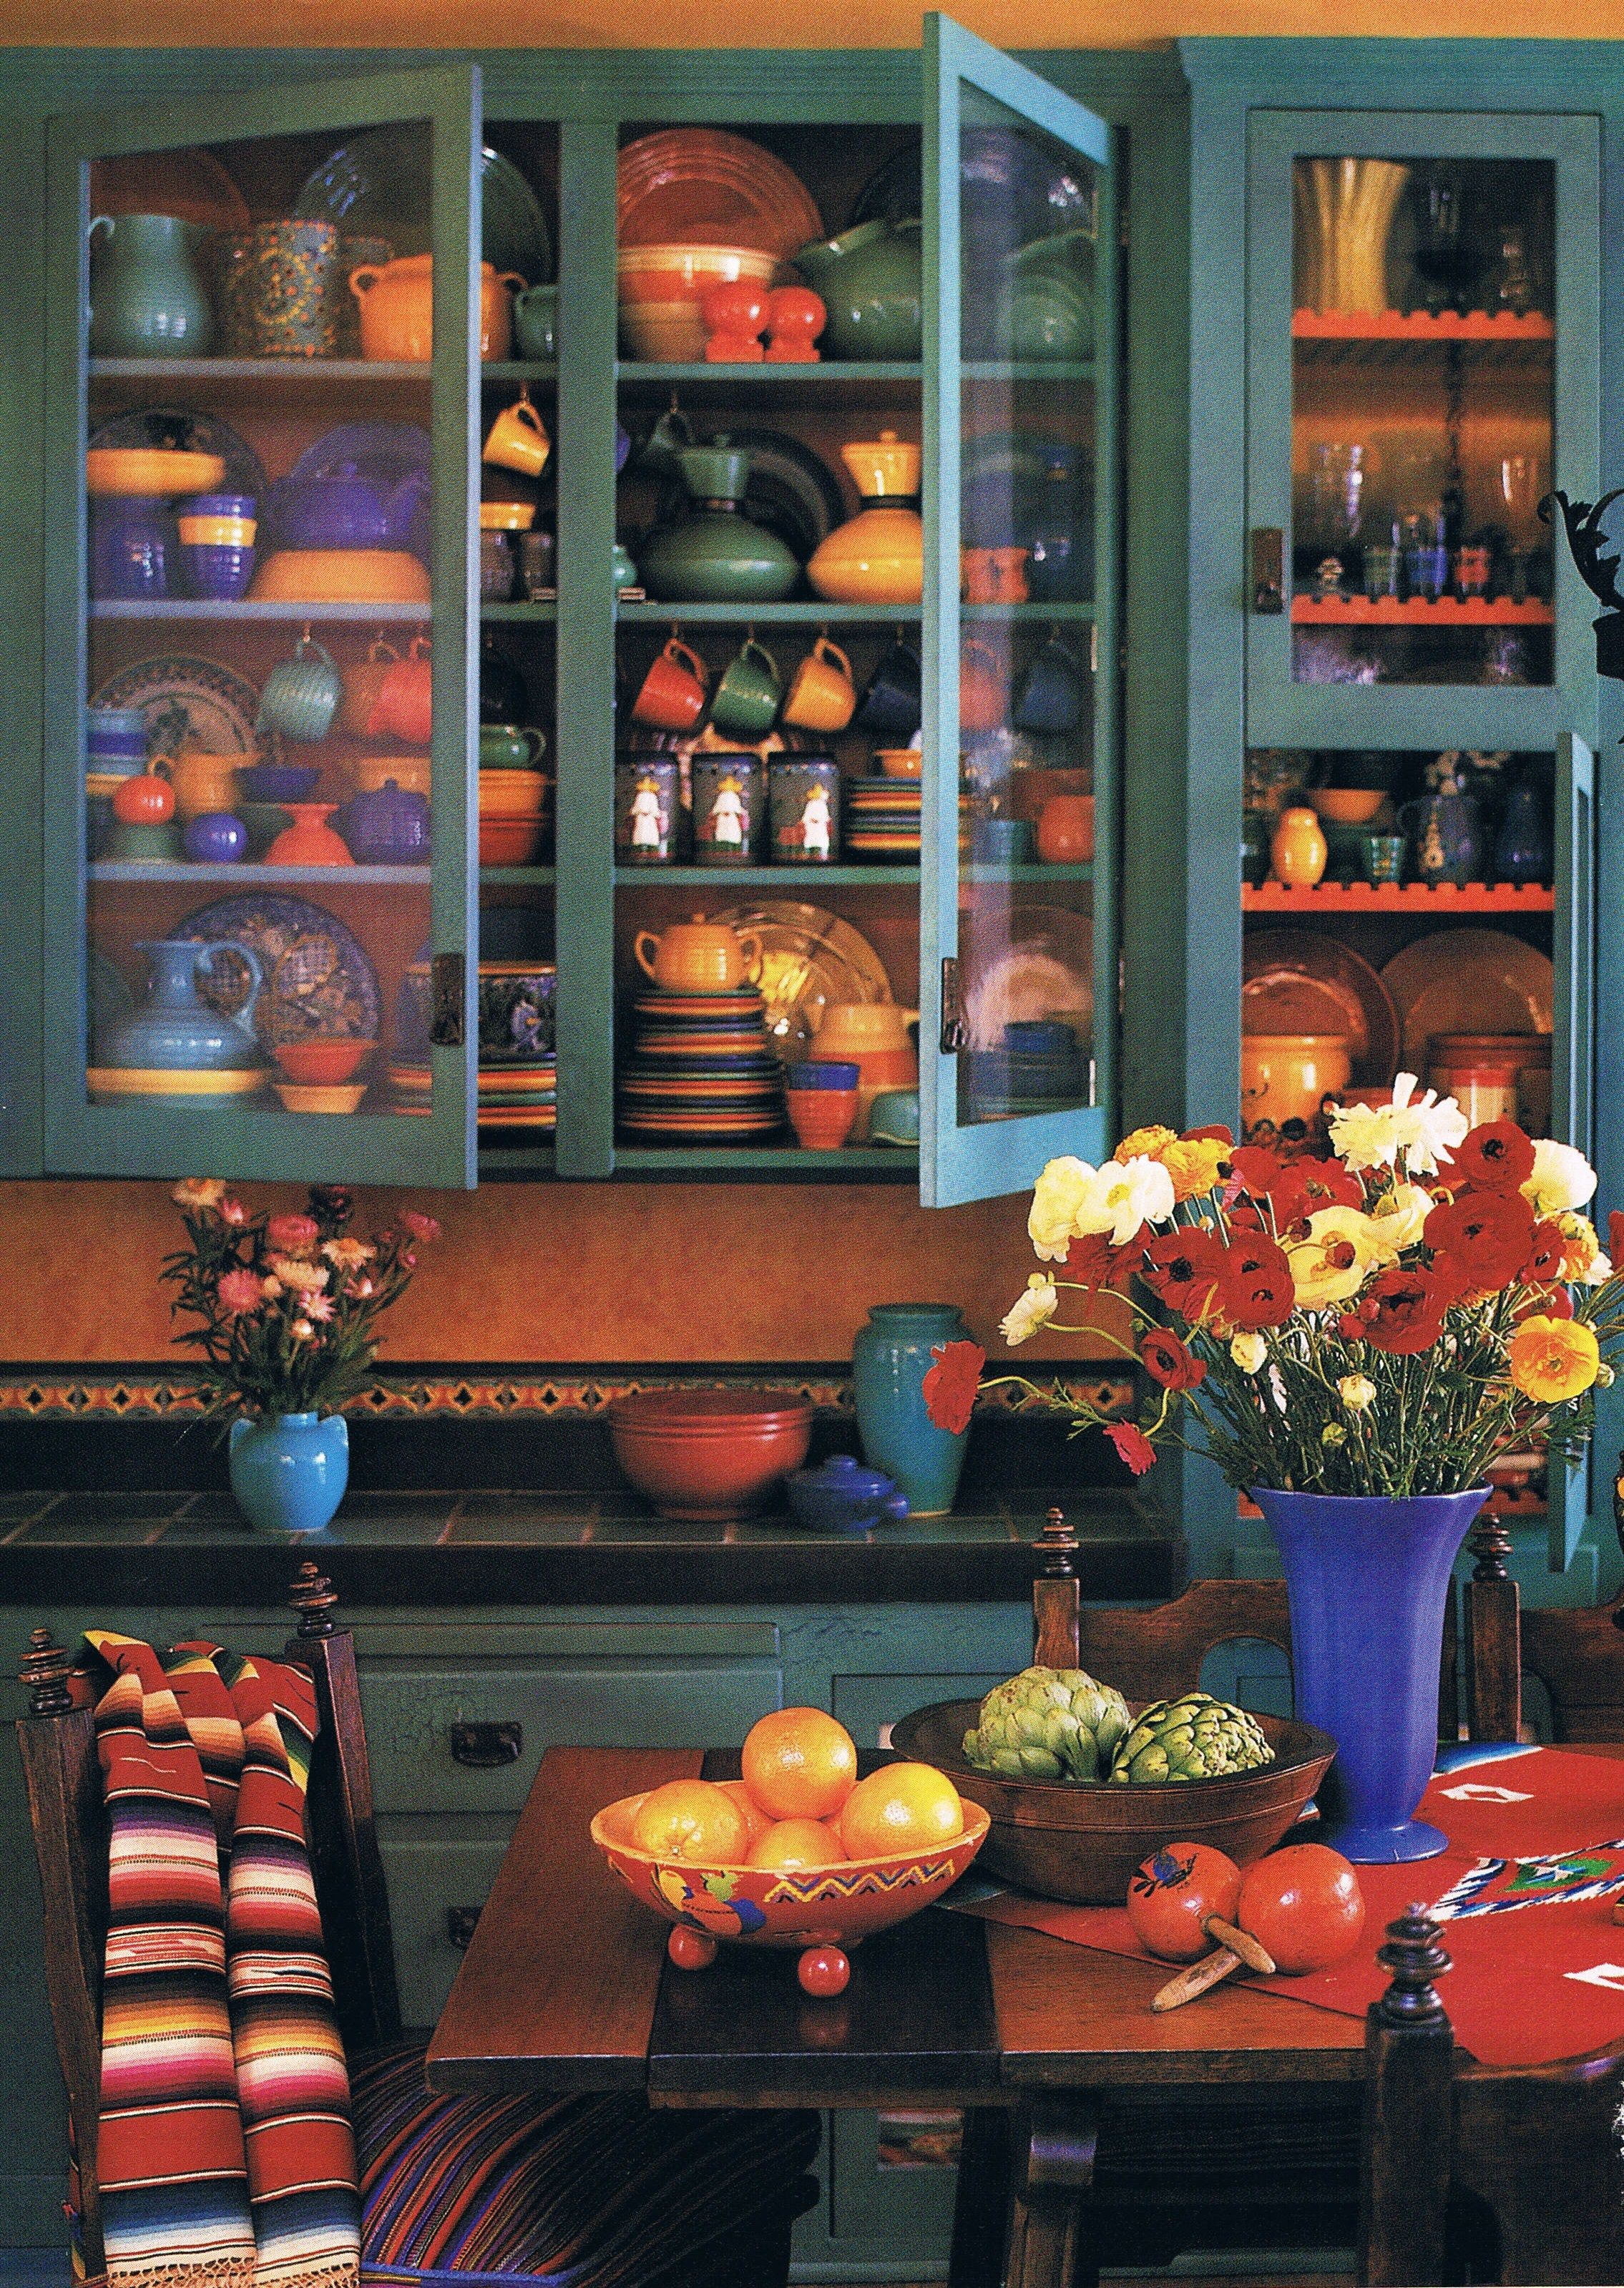 Decorating With Fiestaware Hacienda Style Mexican Interior Design Ideas Pinterest